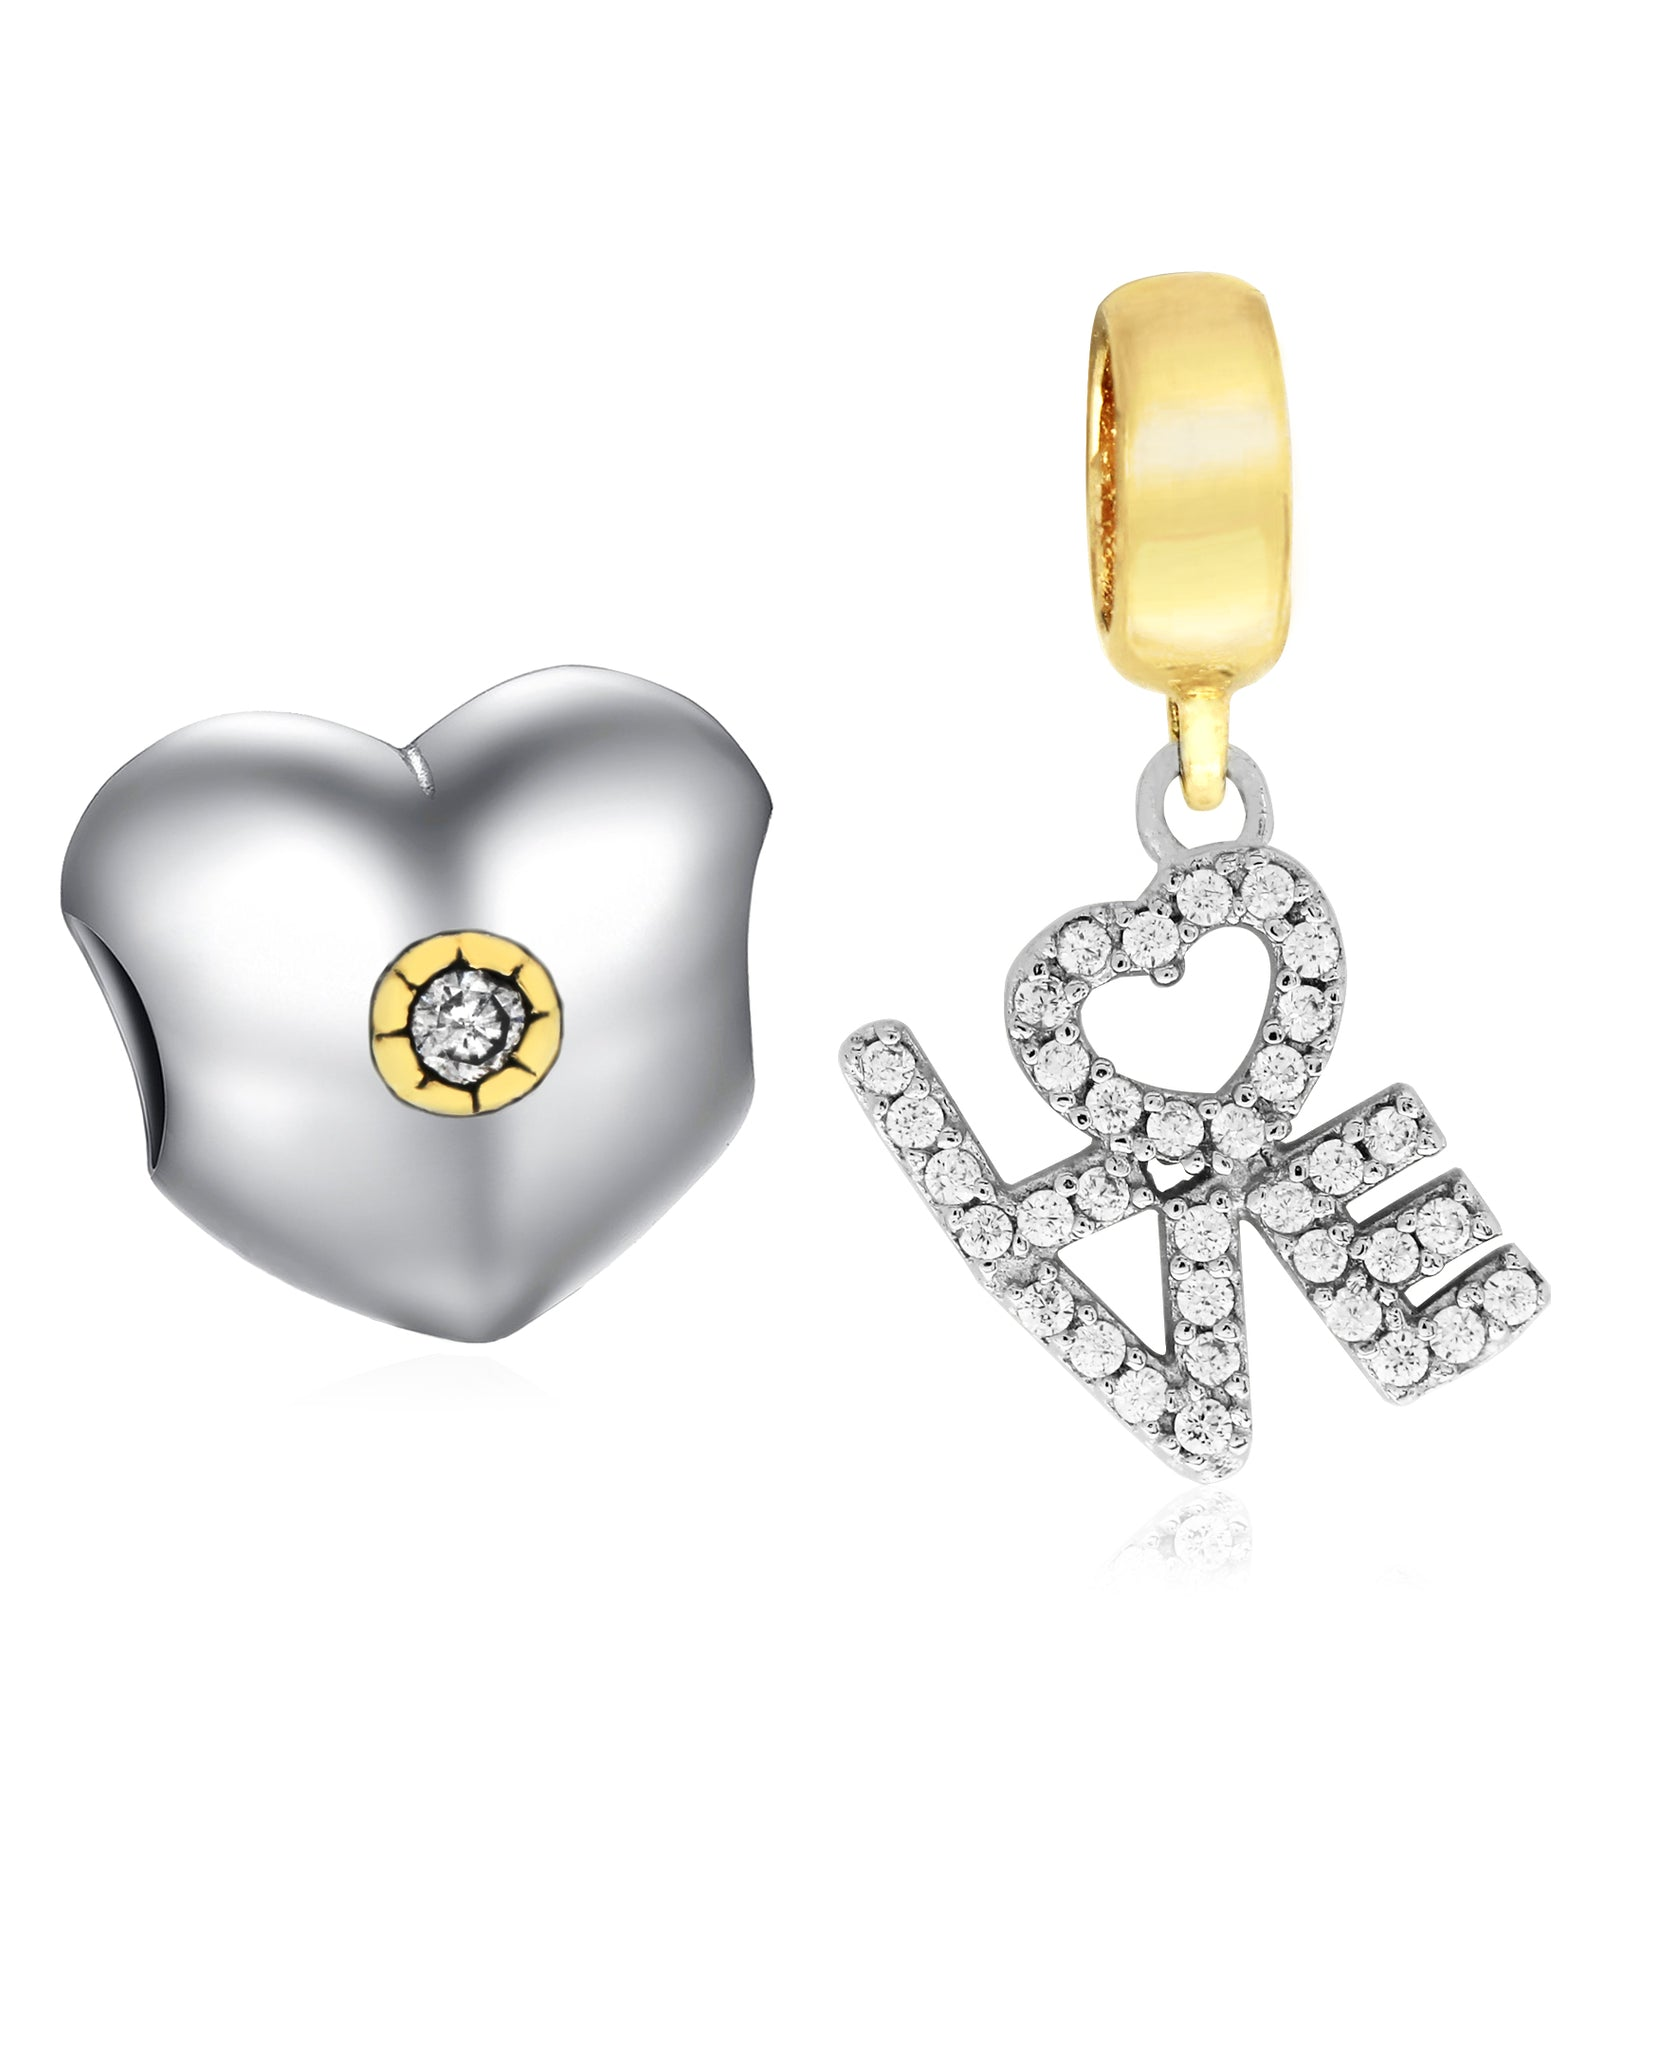 Two-Tone 2-Pc. Set Cubic Zirconia Heart & Love Charms in Sterling Silver (2 colors) - Rhona Sutton Jewellery